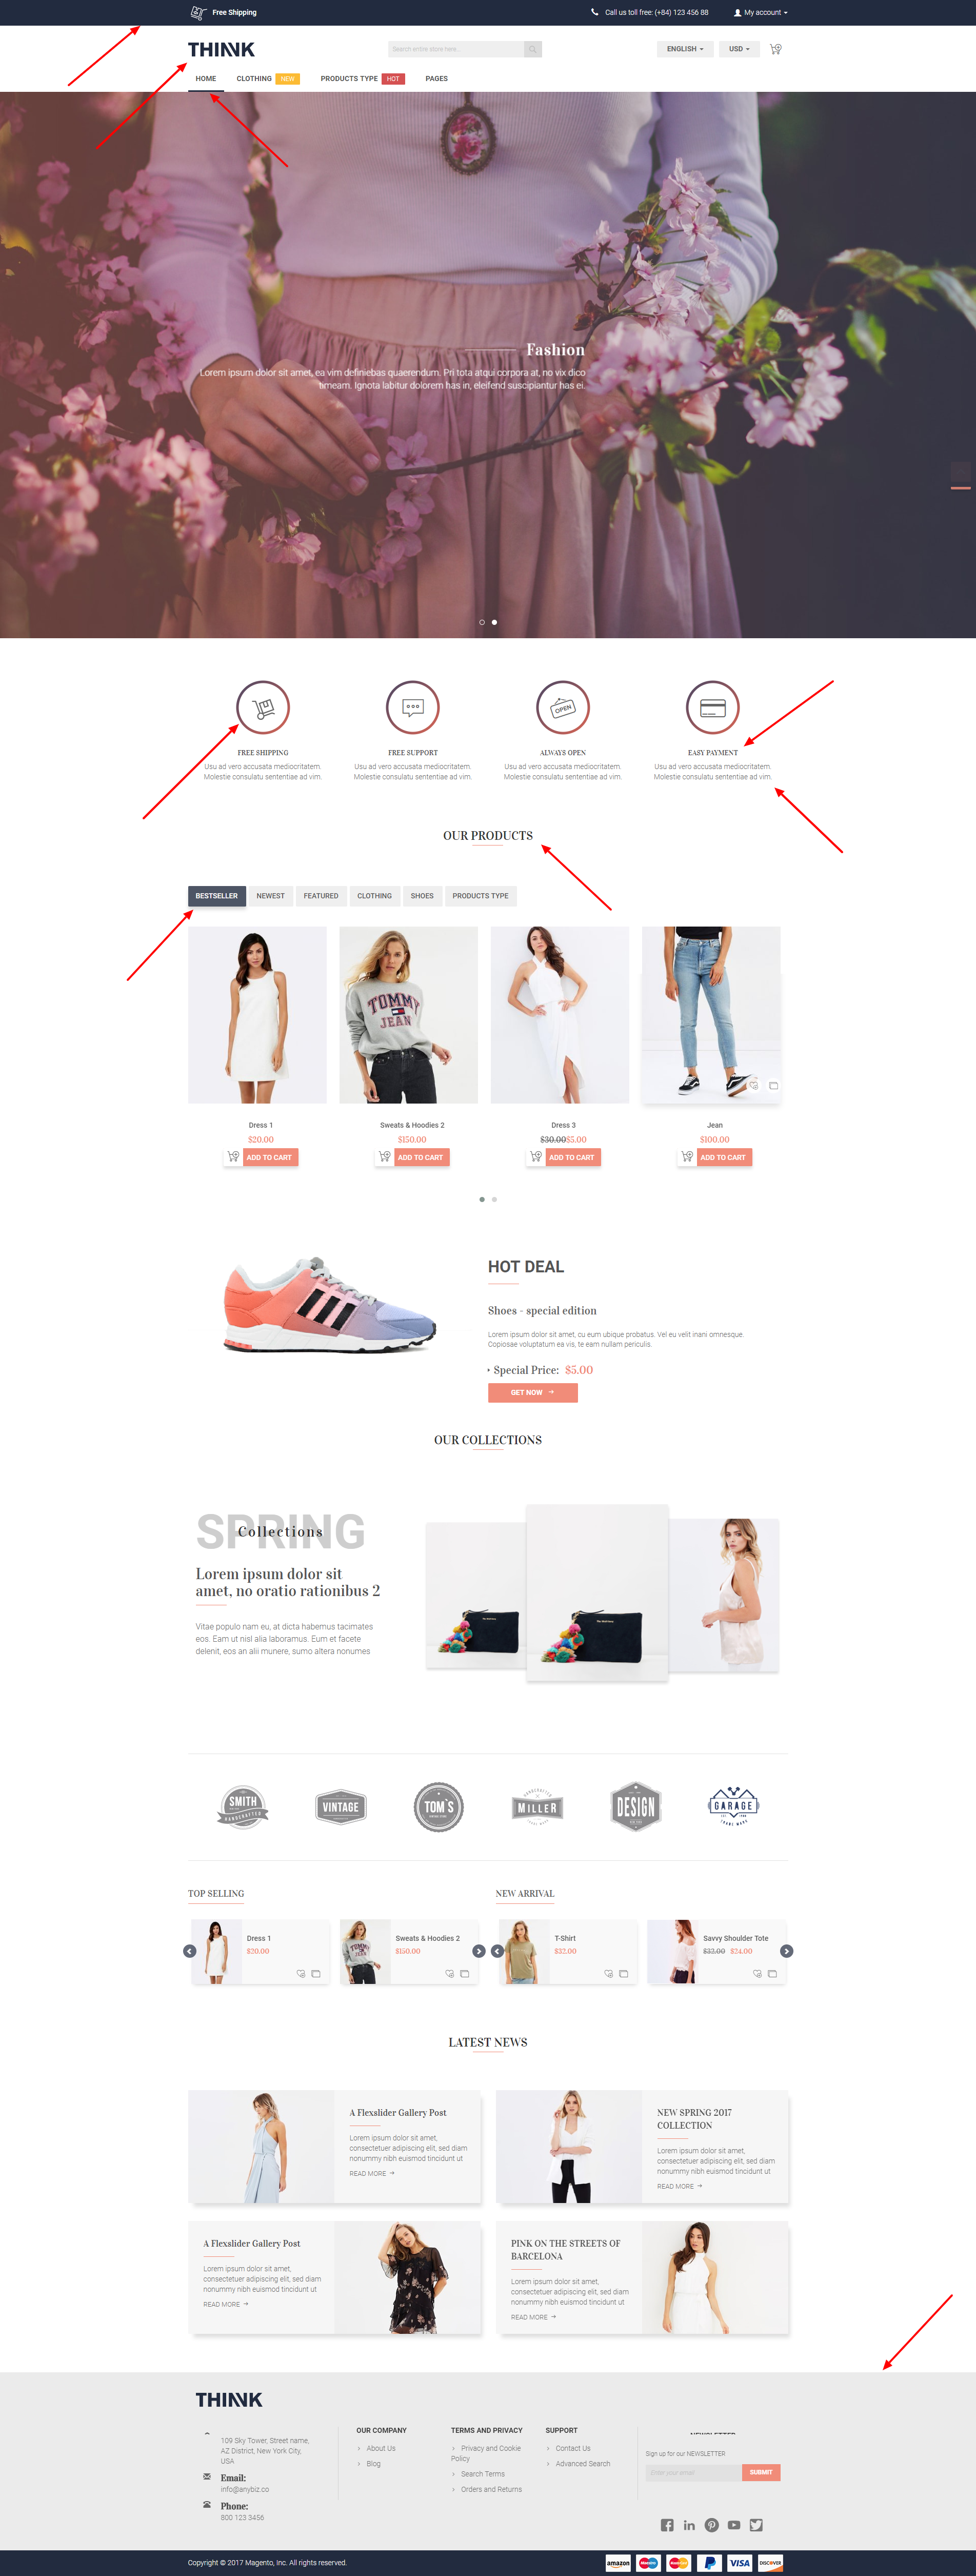 example color configuration in choosing premium Magento 2 theme design